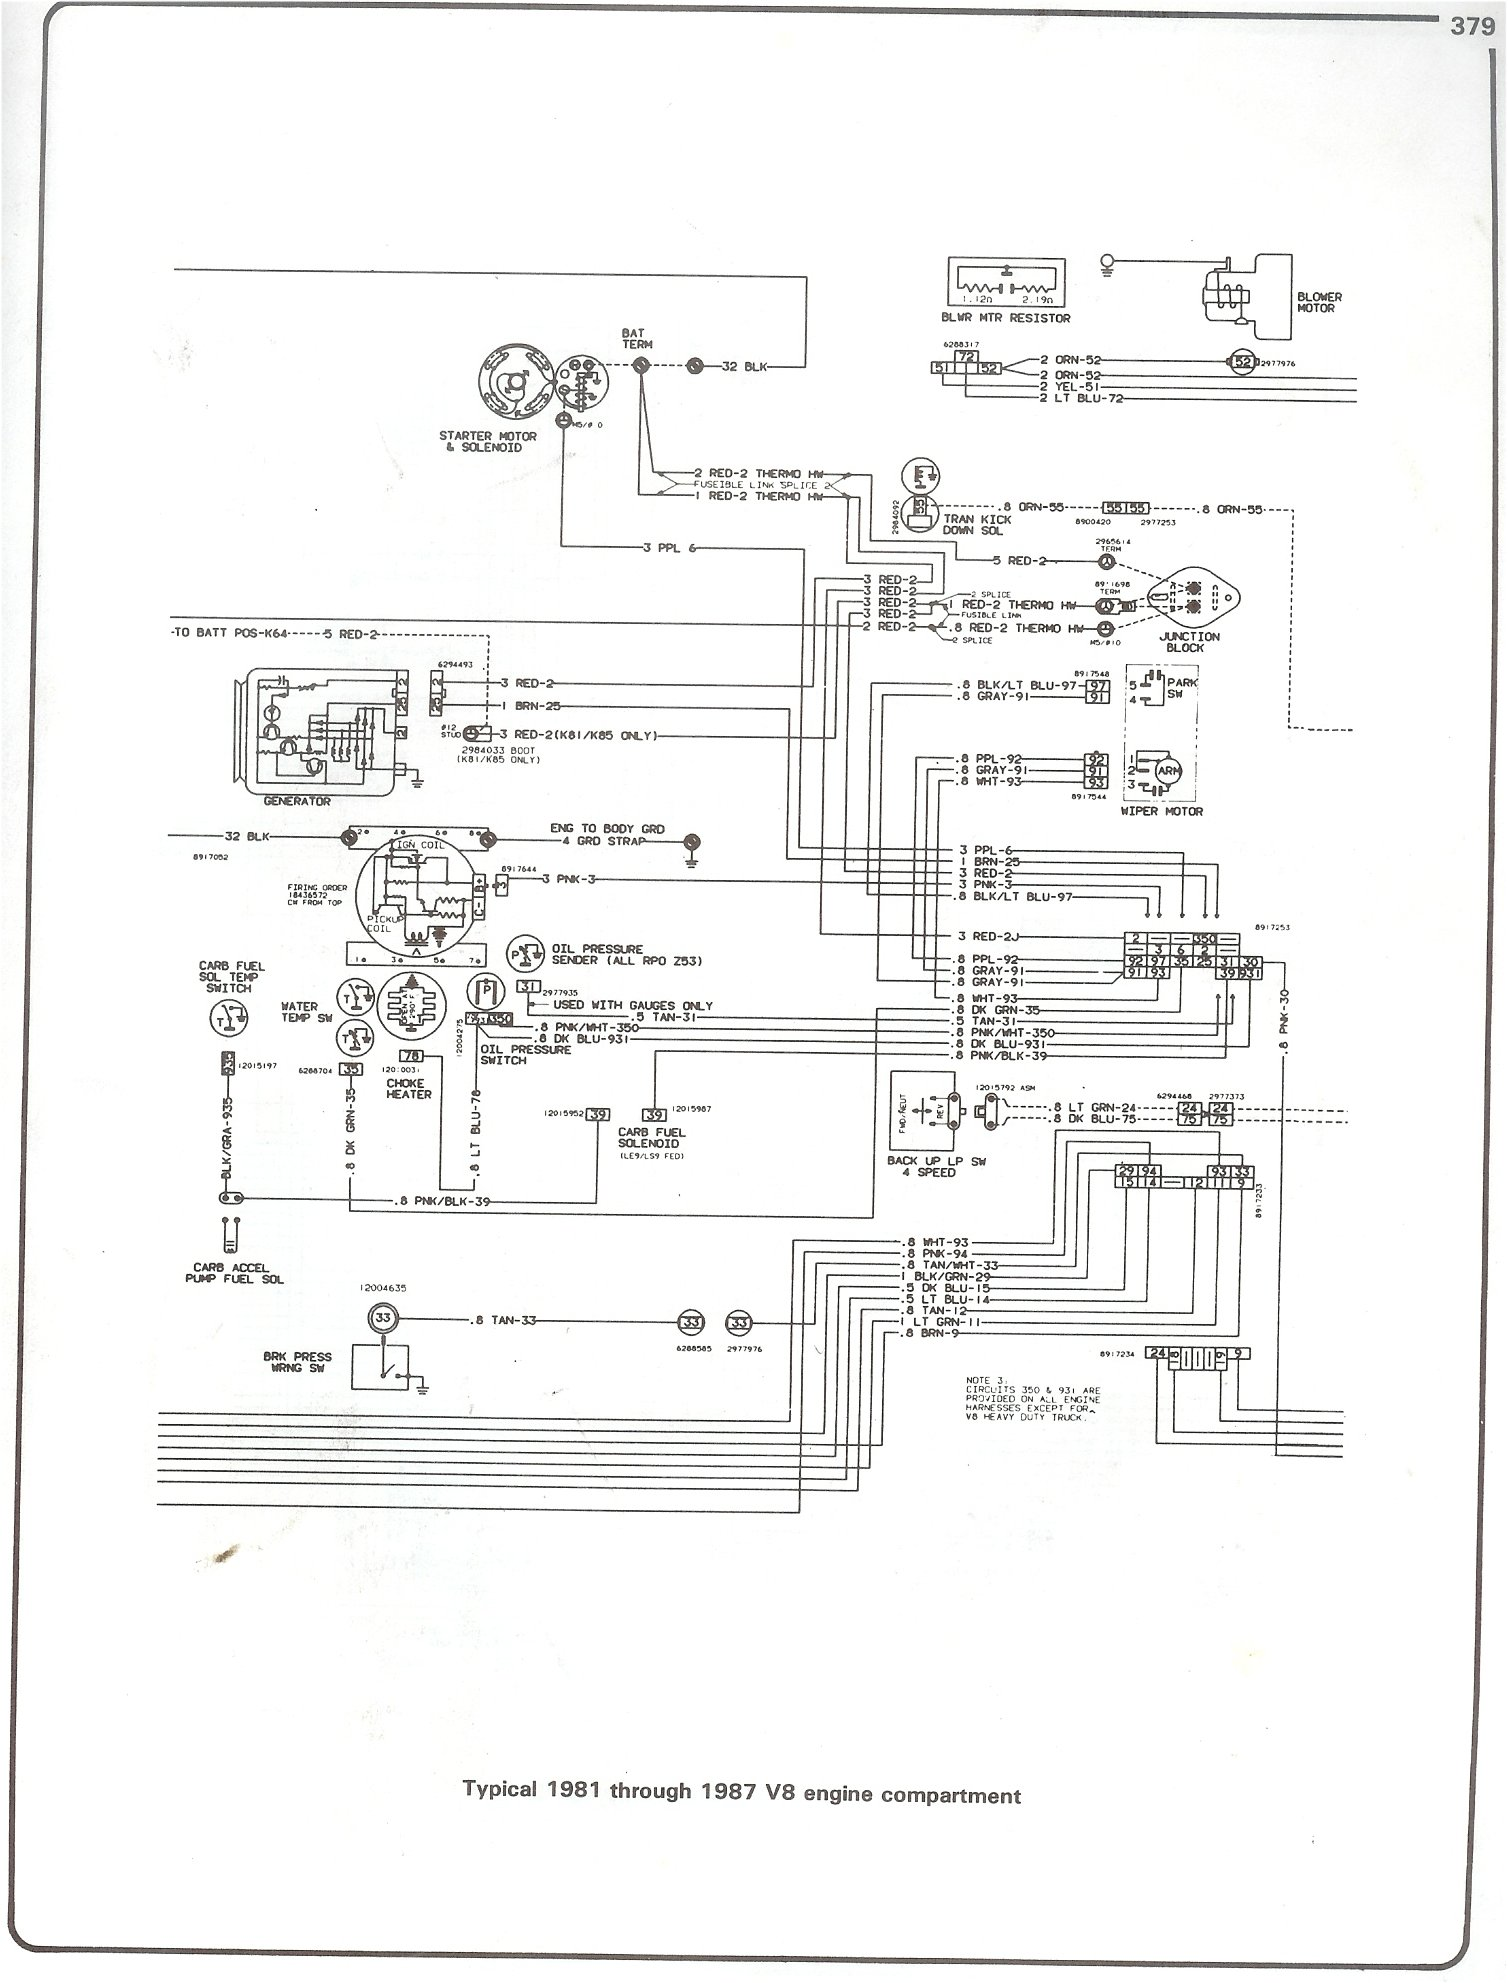 81 87_V8_engine chevy wiring diagrams wiring diagrams for chevy trucks \u2022 free 2000 Astro Van Wiring Diagram at mifinder.co